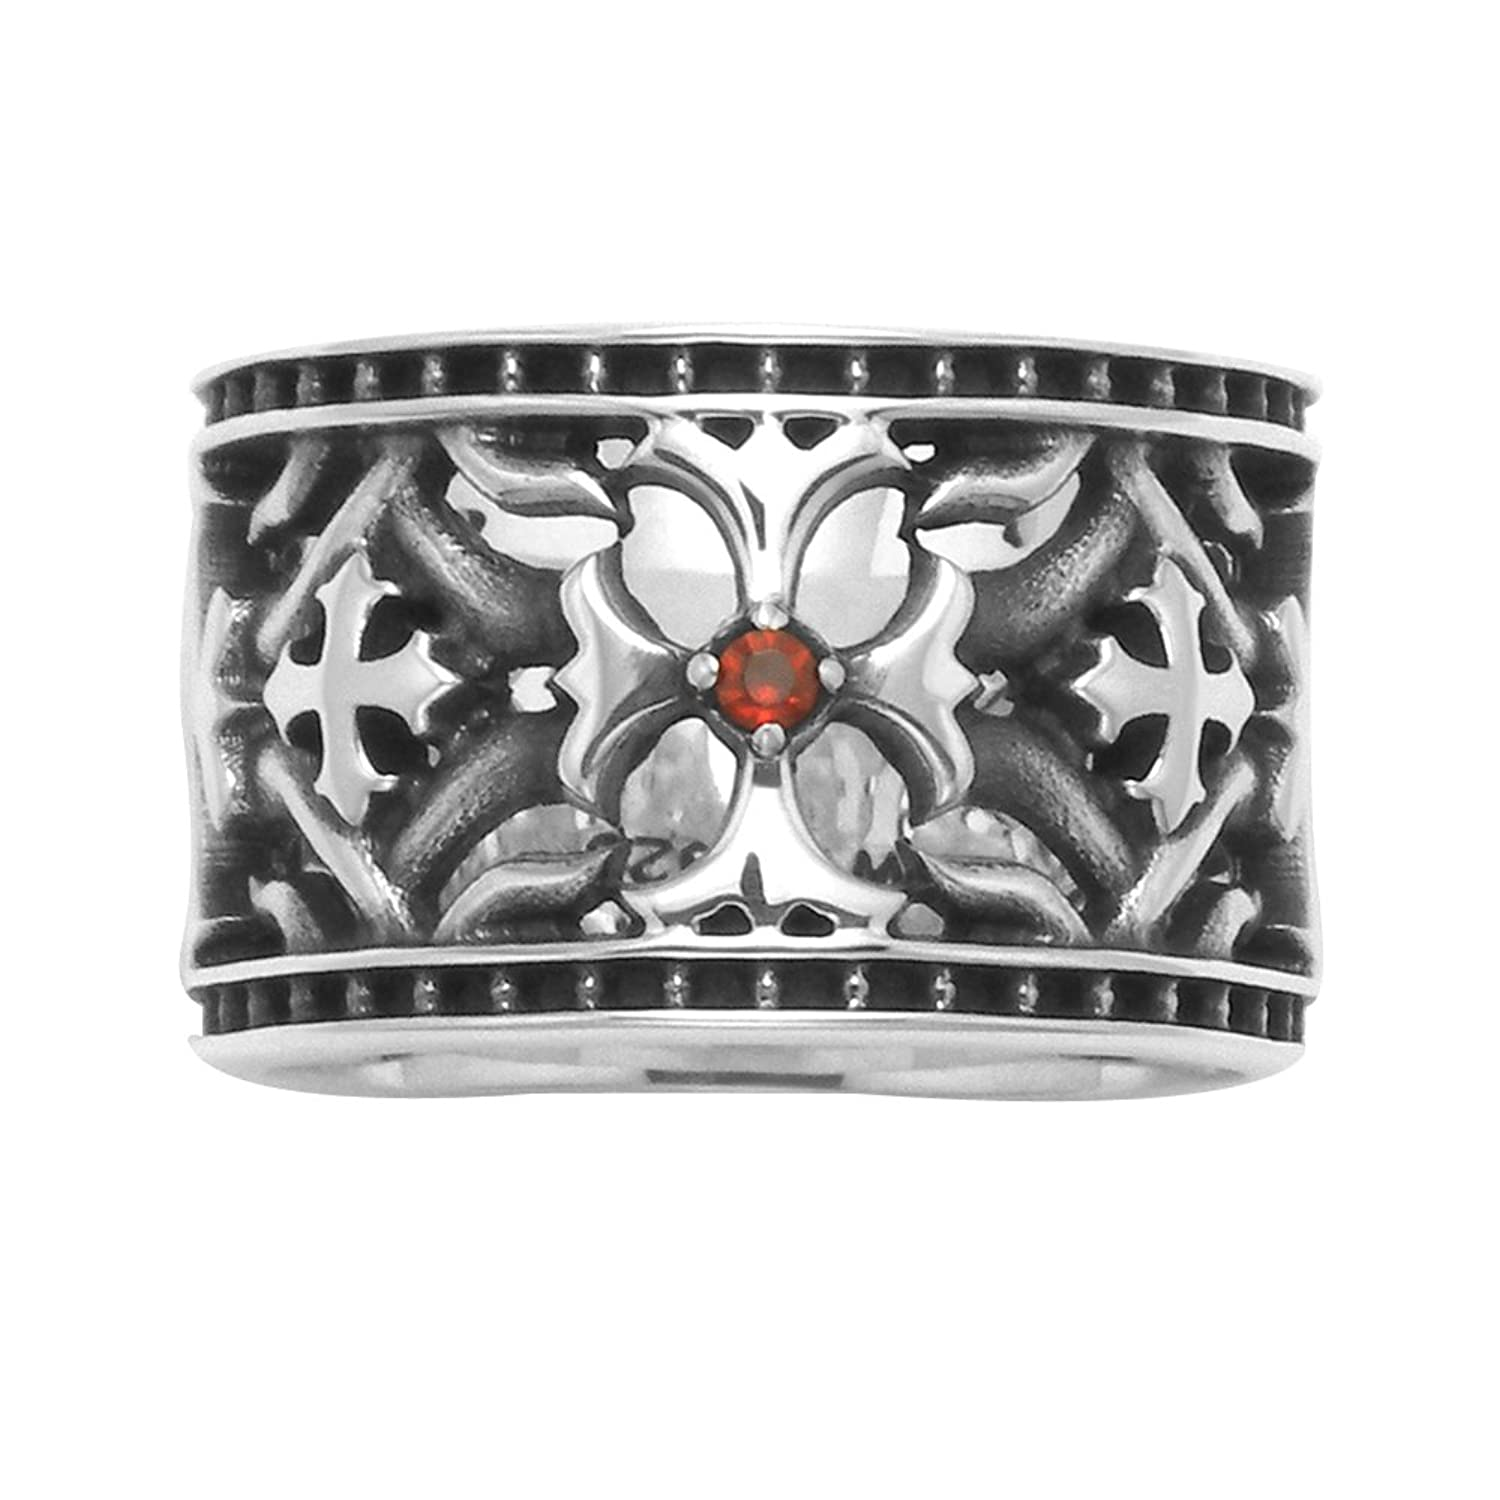 Deluxe Adult Costumes - Sterling silver Maltese Cross costume ring with antiqued openwork band and red faceted crystal